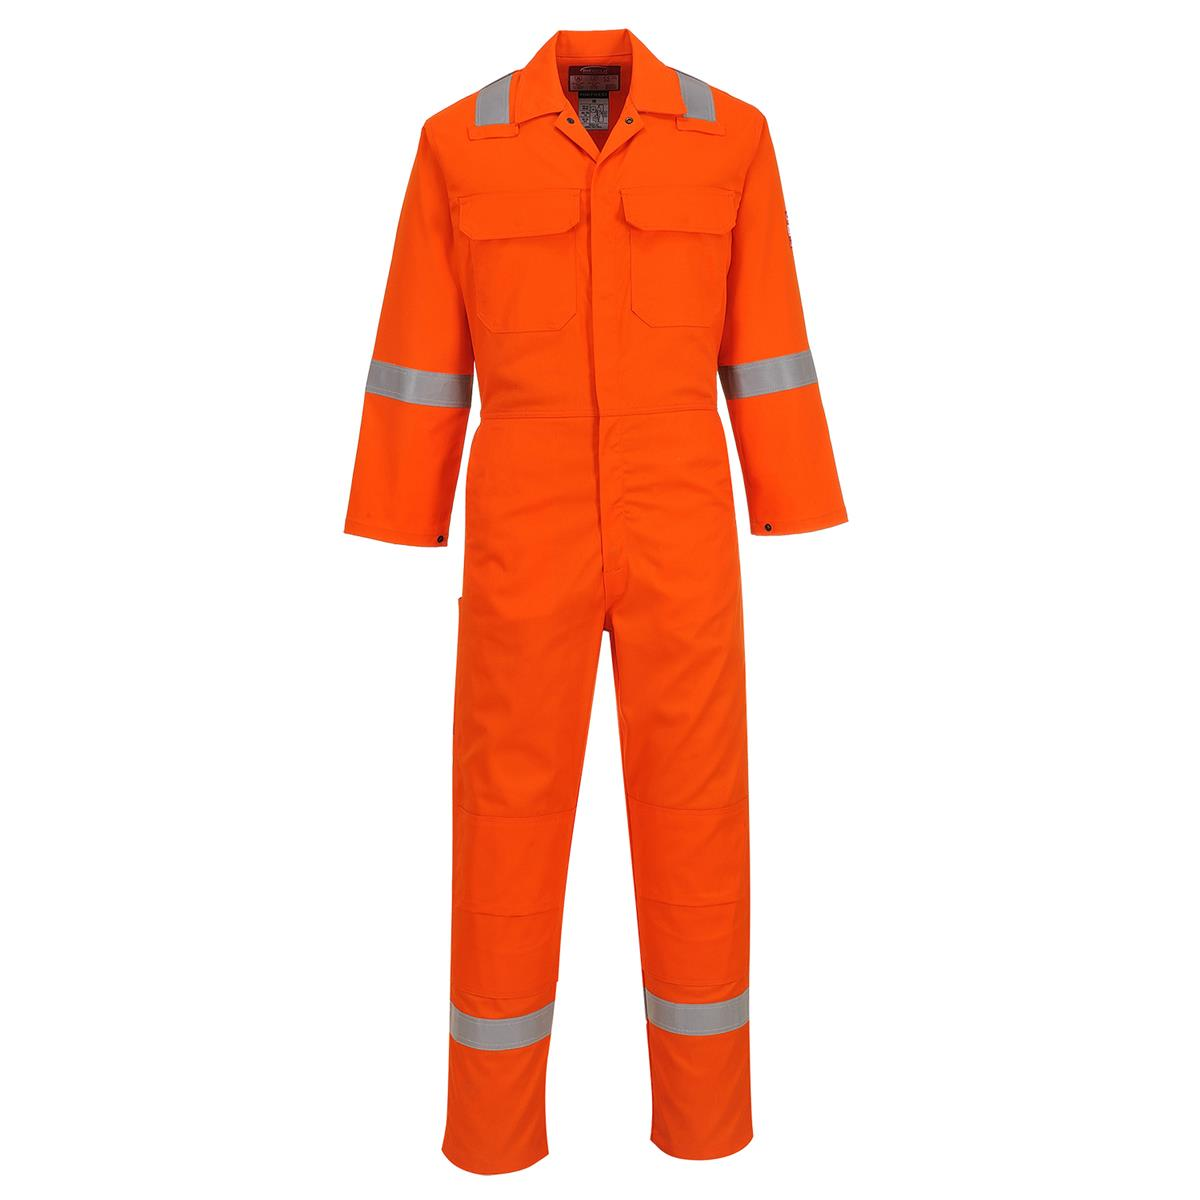 Portwest Ubiz5 Fire Resistant Coverall With Reflective Tape Nfpa 2112 Nfpa 70e Navy Orange